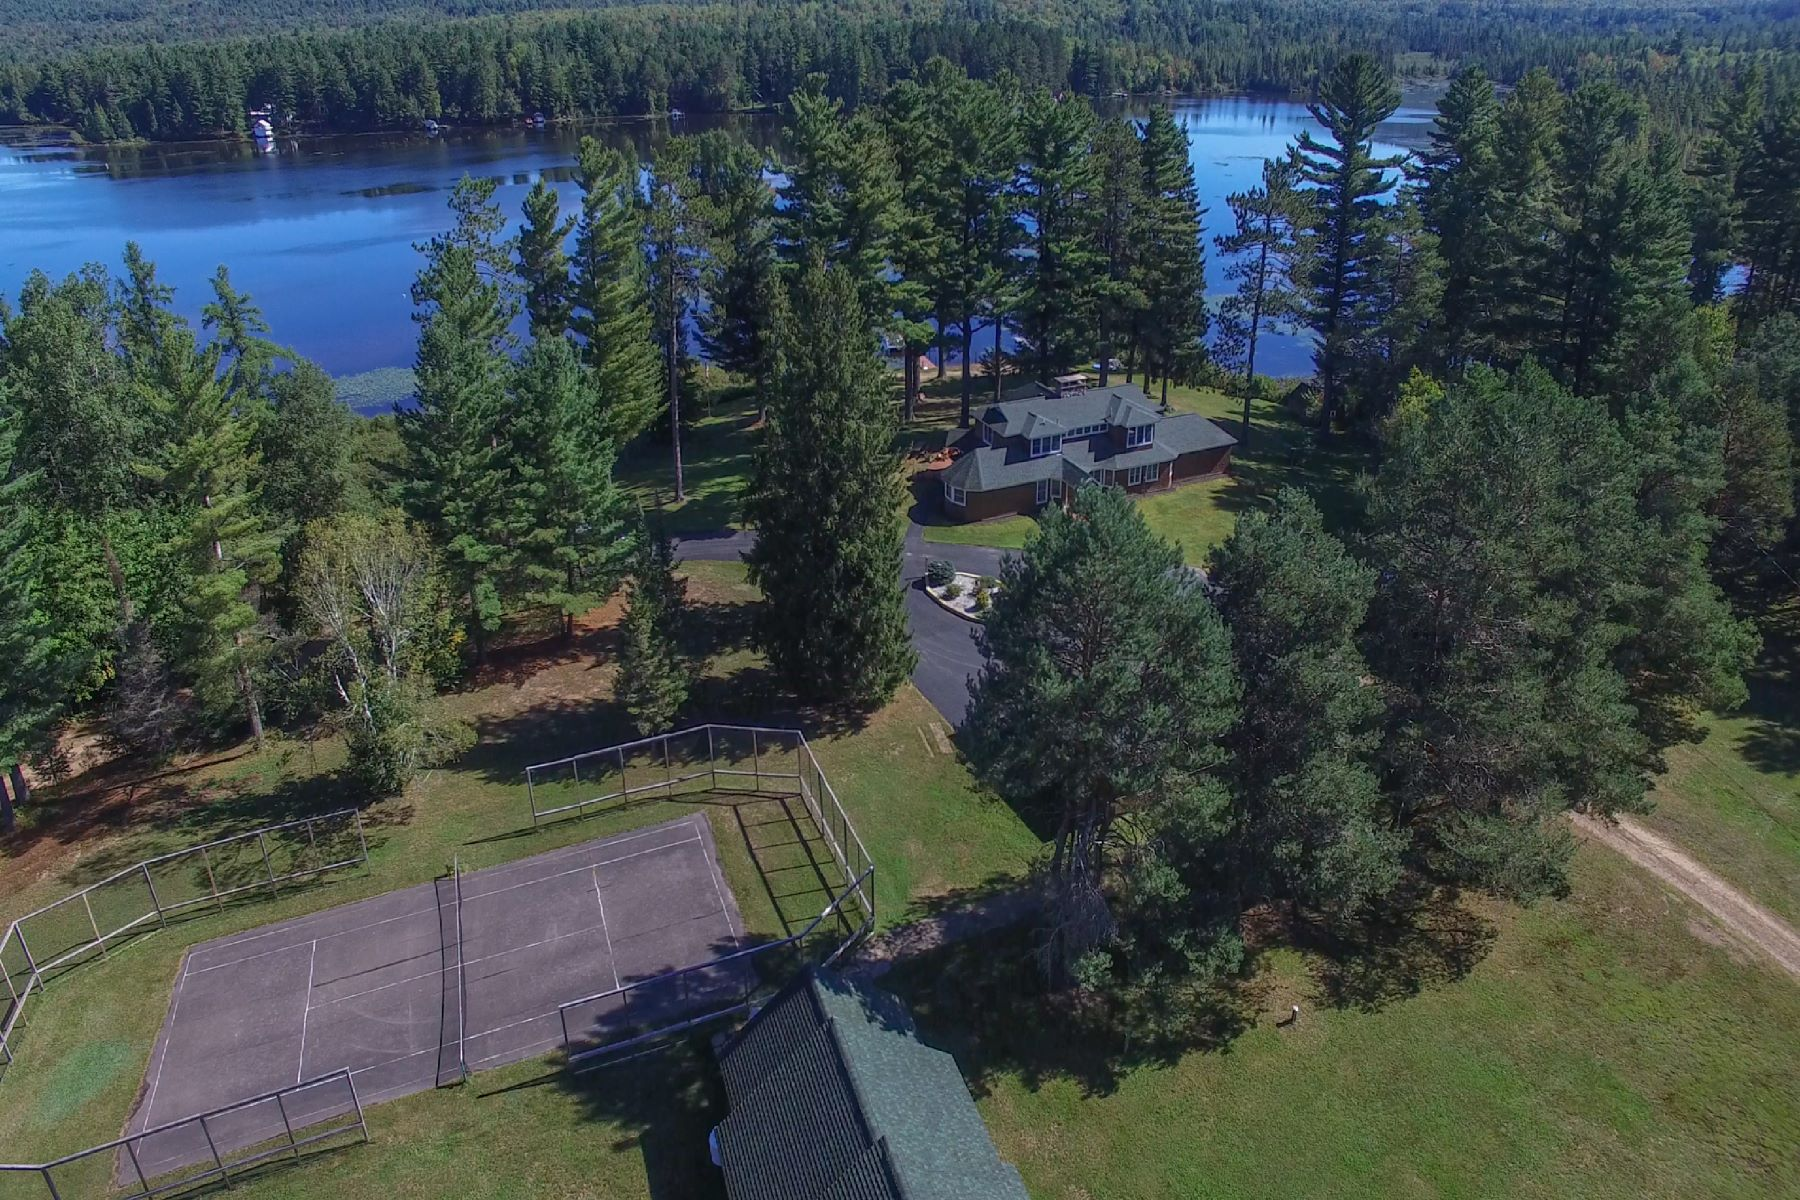 Single Family Homes for Active at Mountain View Lake Family Compound 25 Morris Lane Bellmont, New York 12969 United States